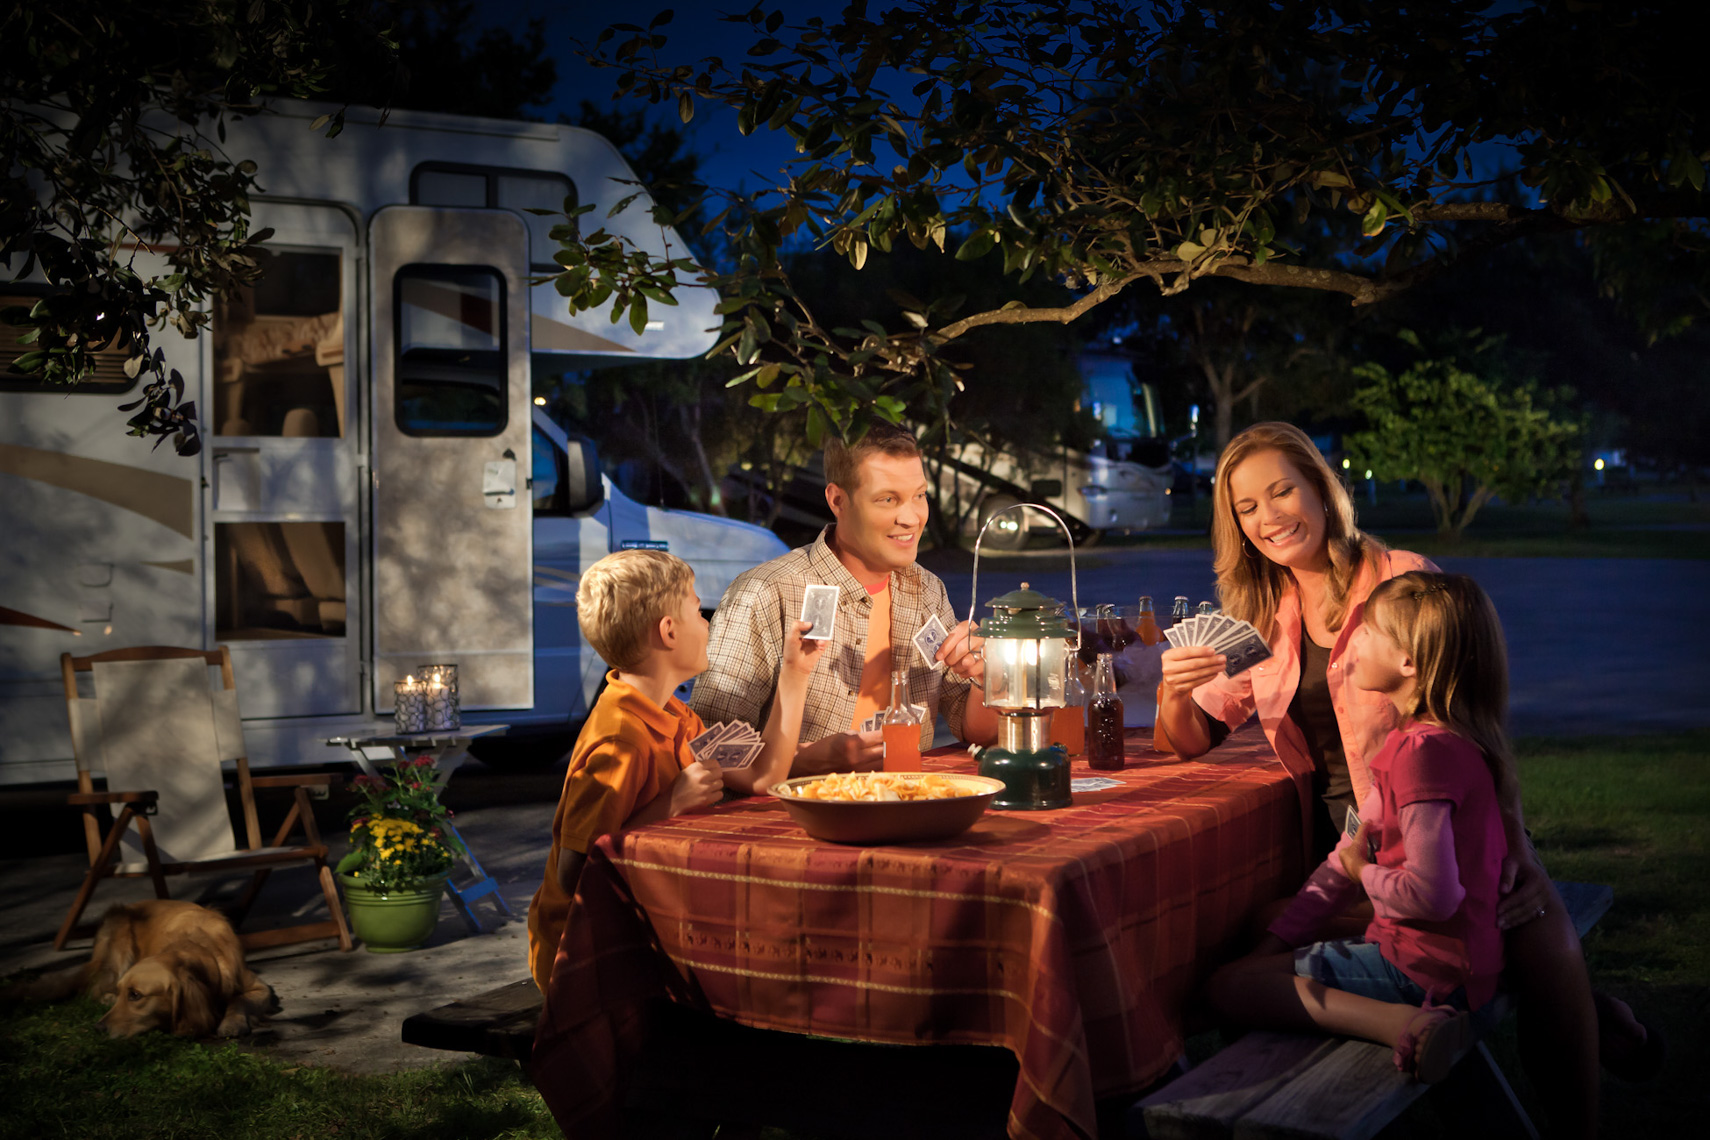 Family camping and eating at picnic table, shot by Steven P. Widoff